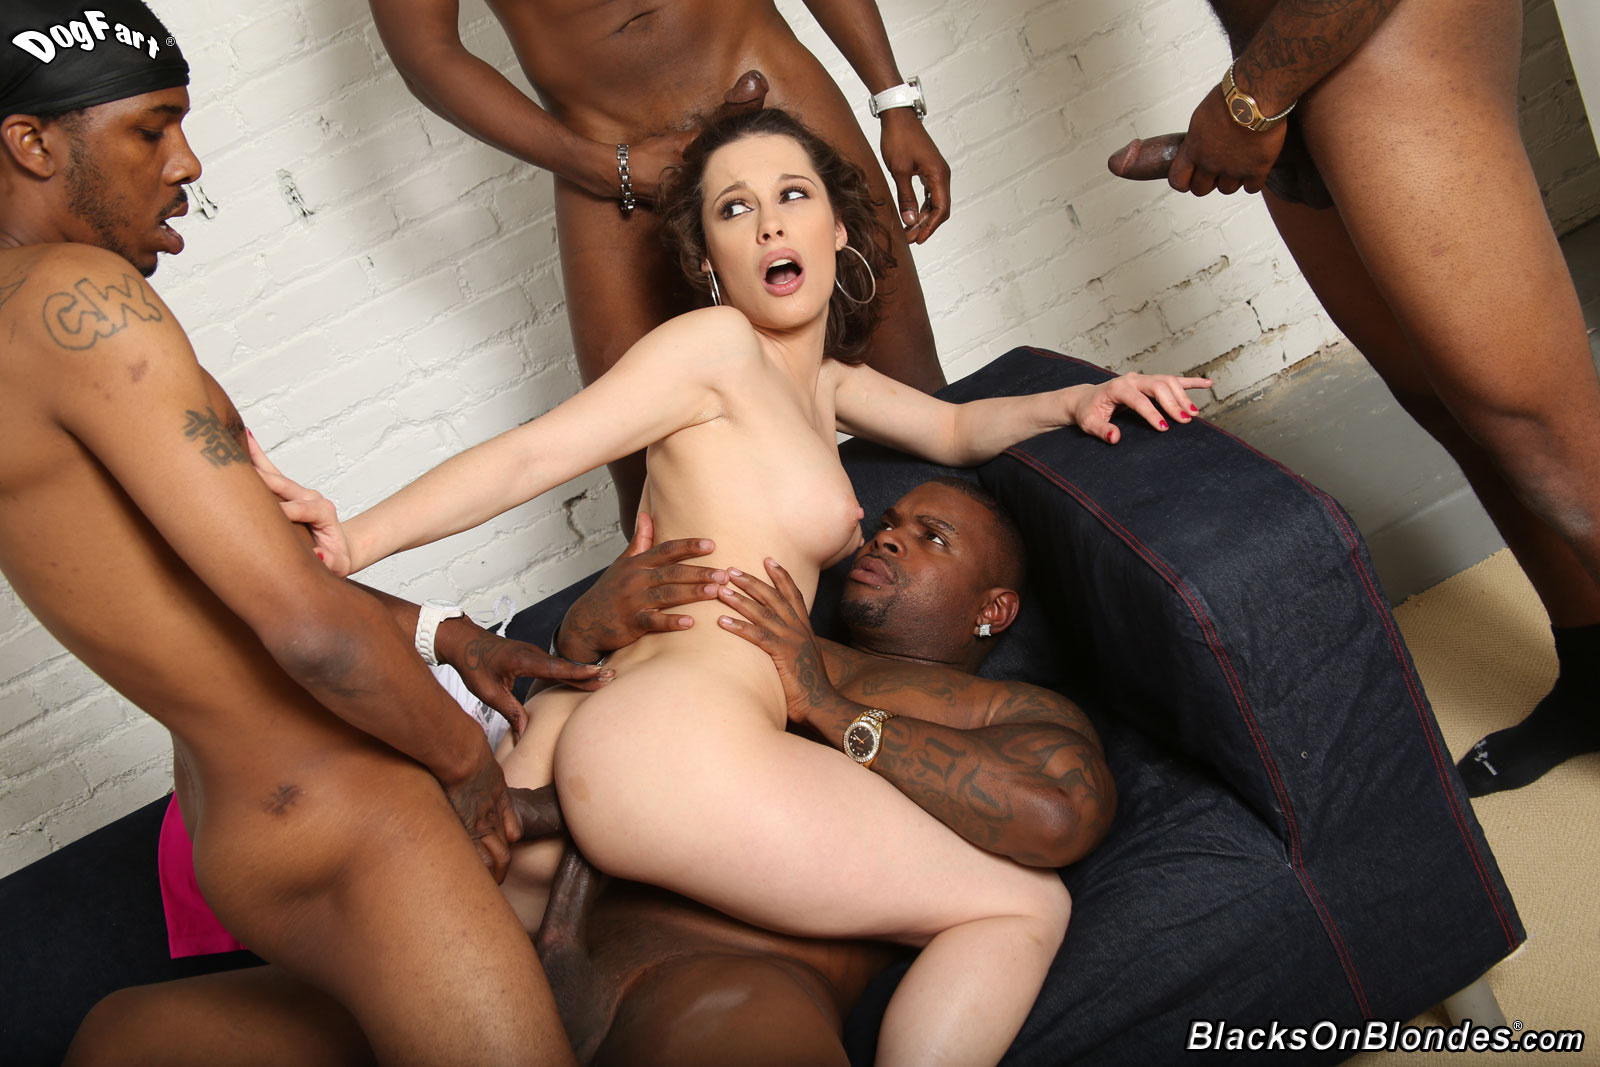 Dee siren takes on a black cock outdoors 5